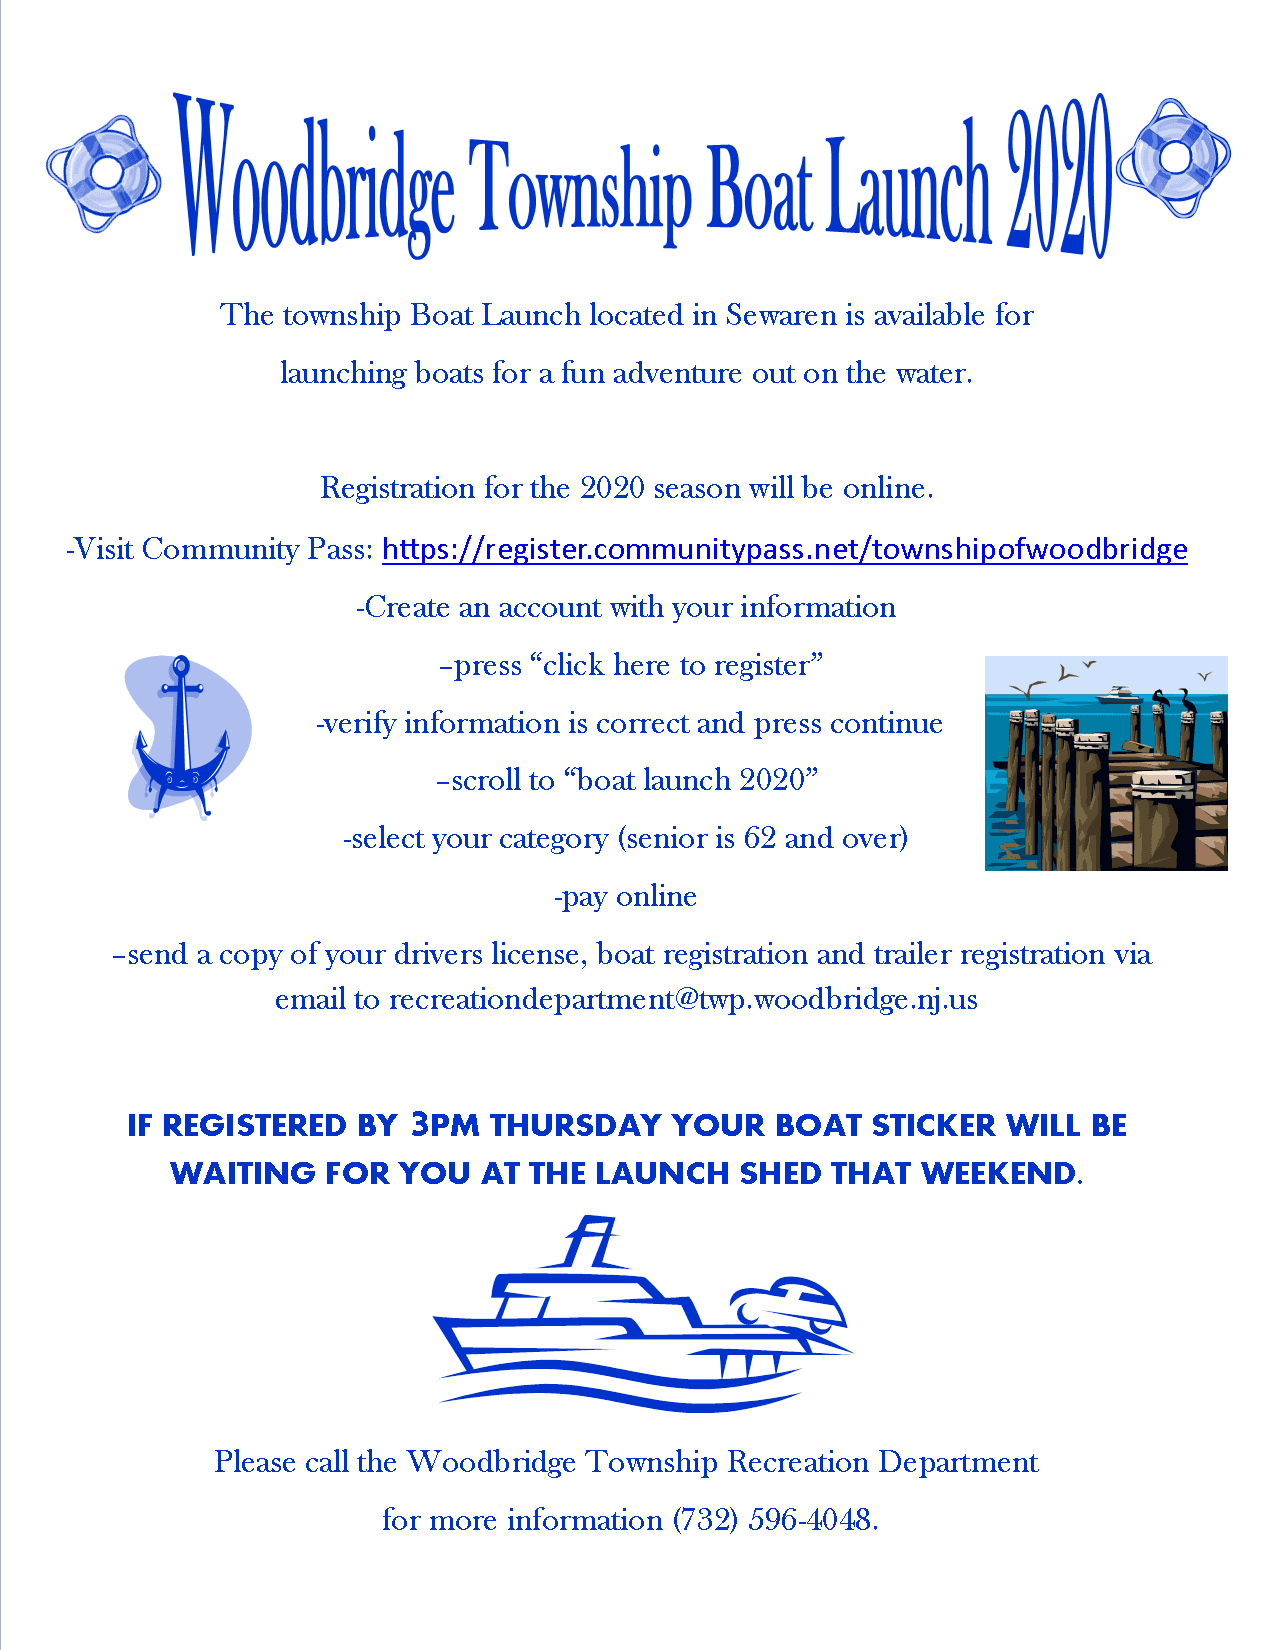 boat launch online reg instructions, click for direct link to Community Pass